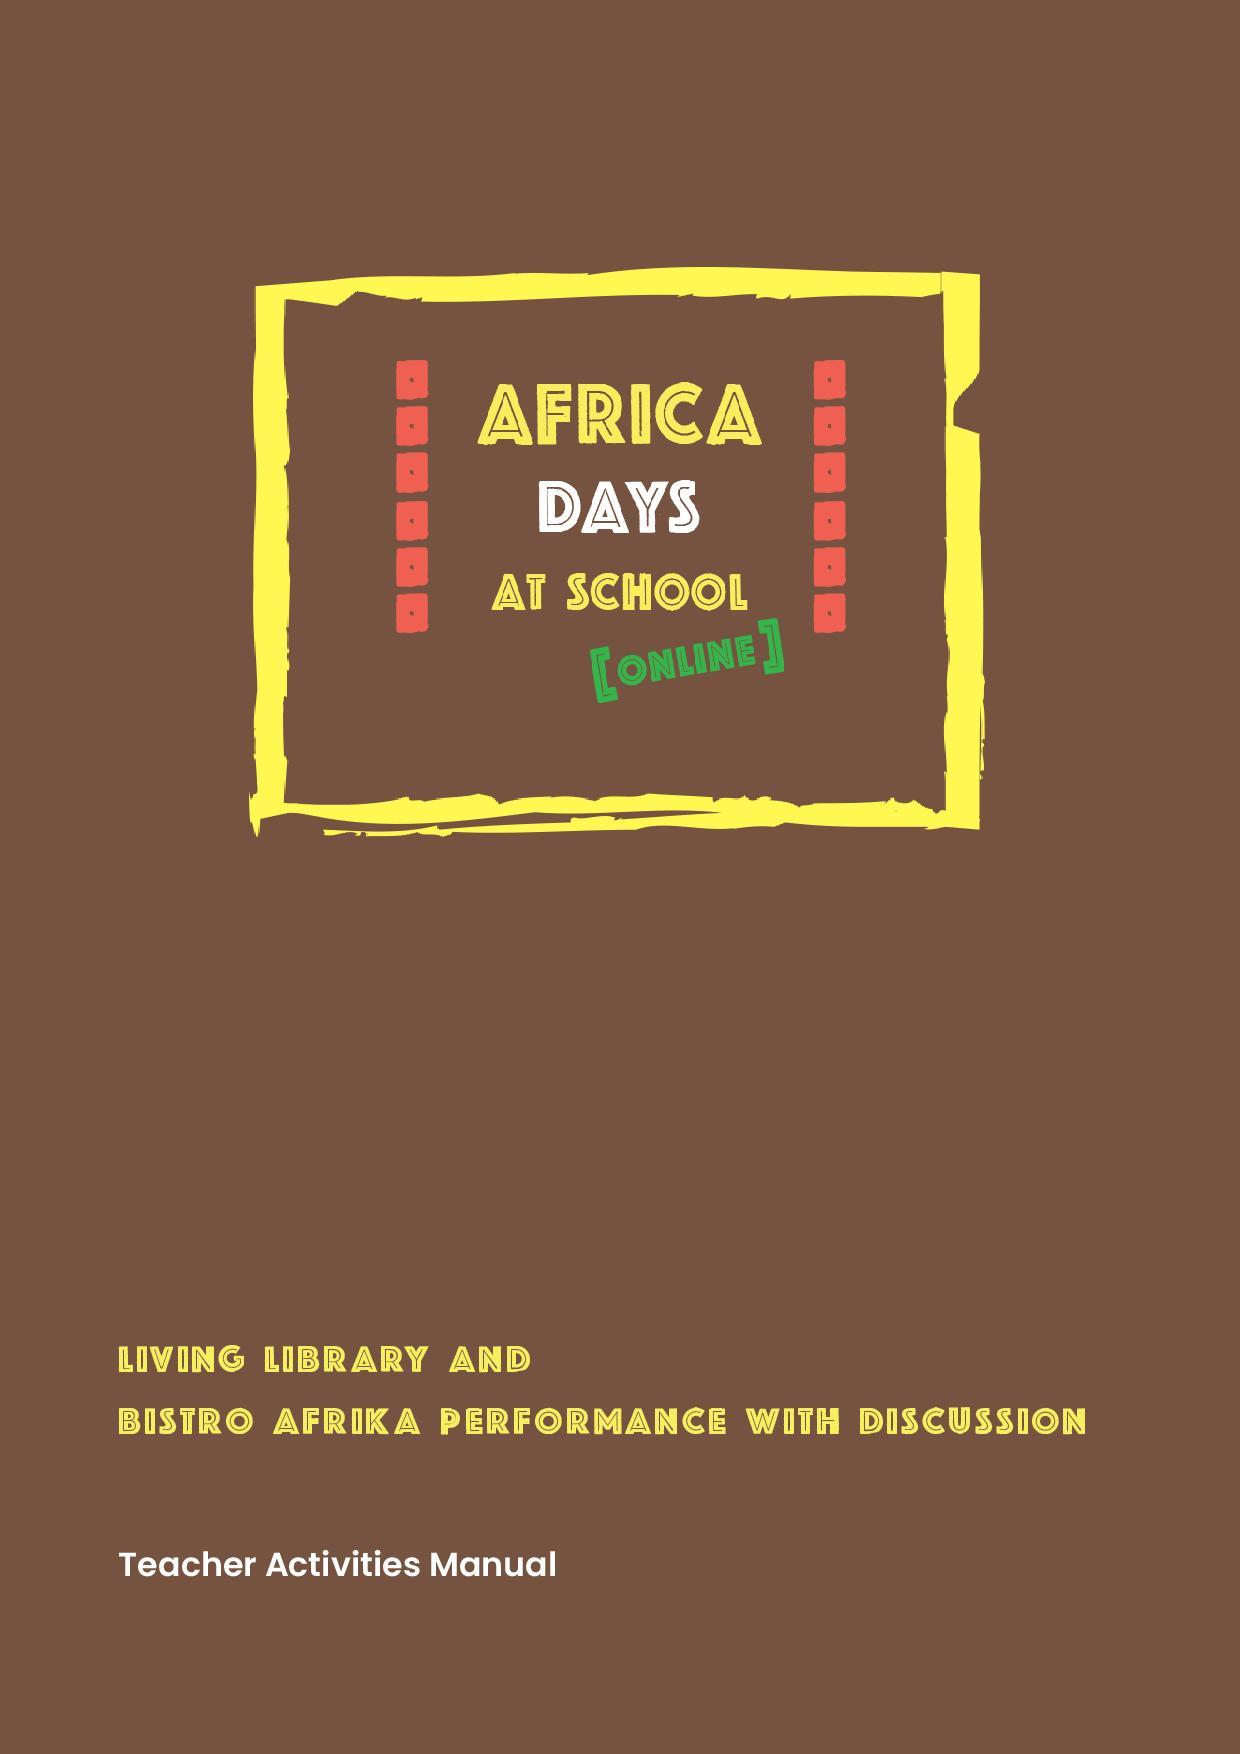 Africa Days at School